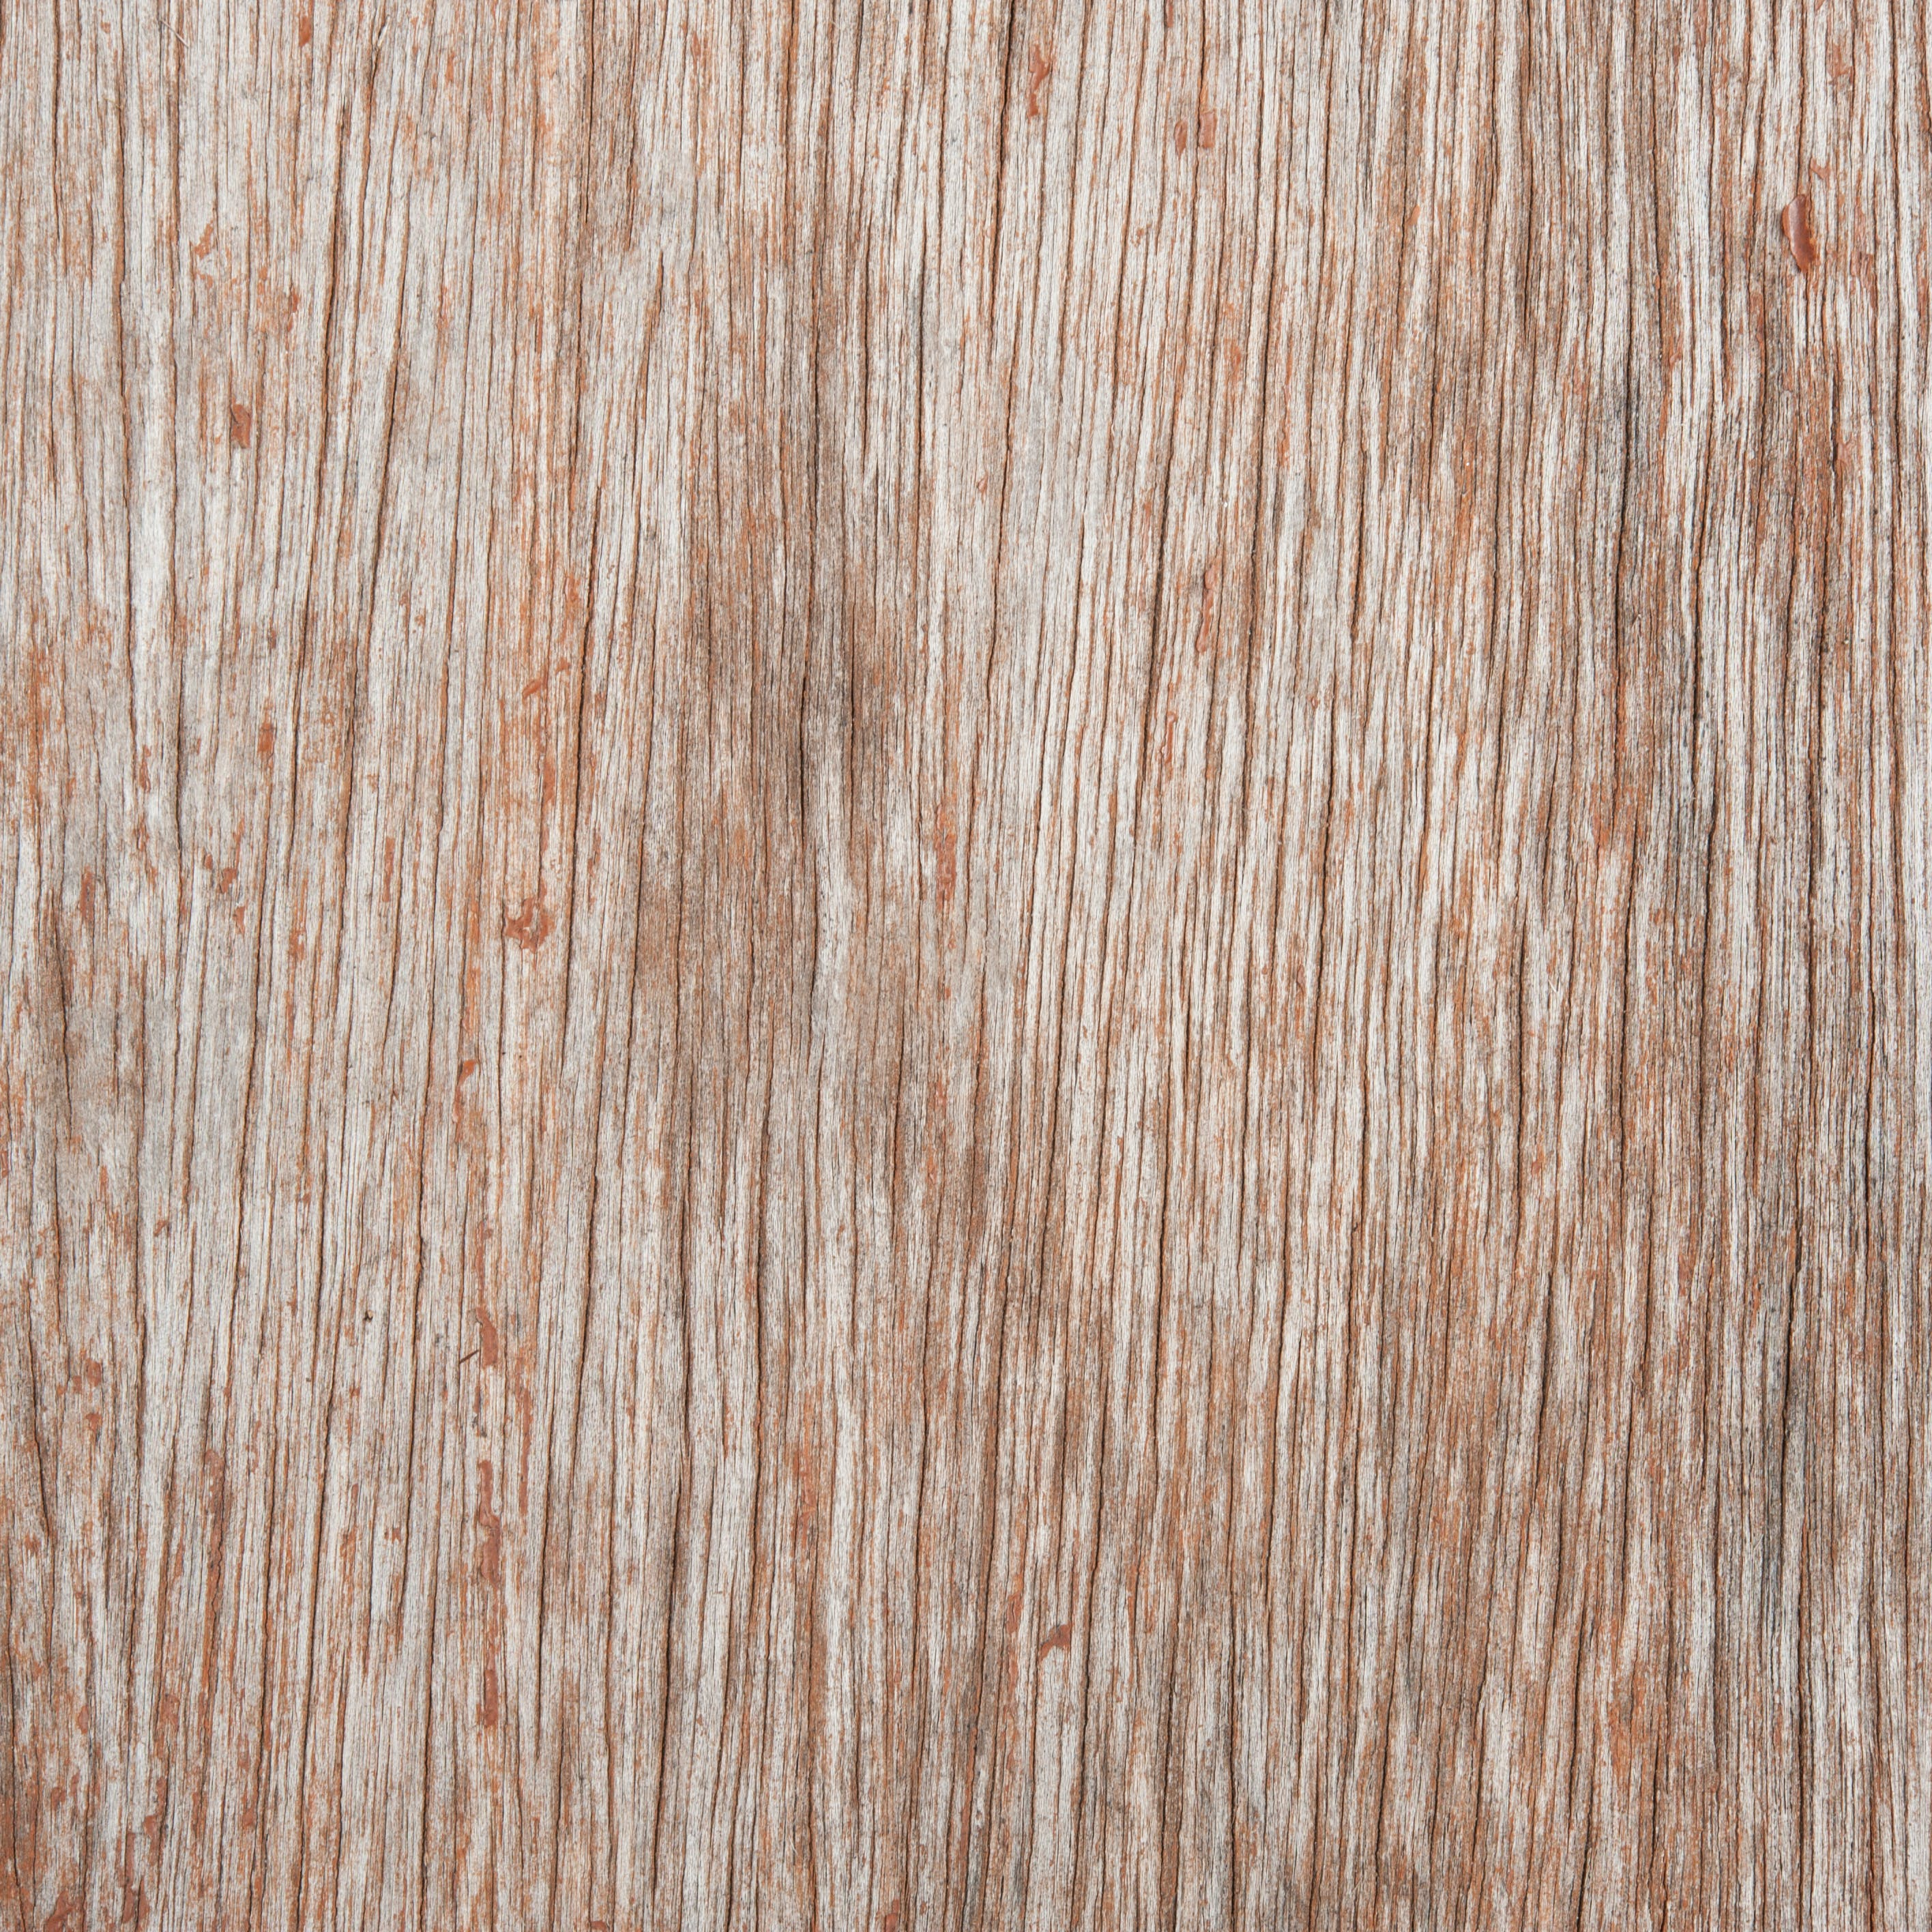 Free stock photo of wood, red, desk, pattern